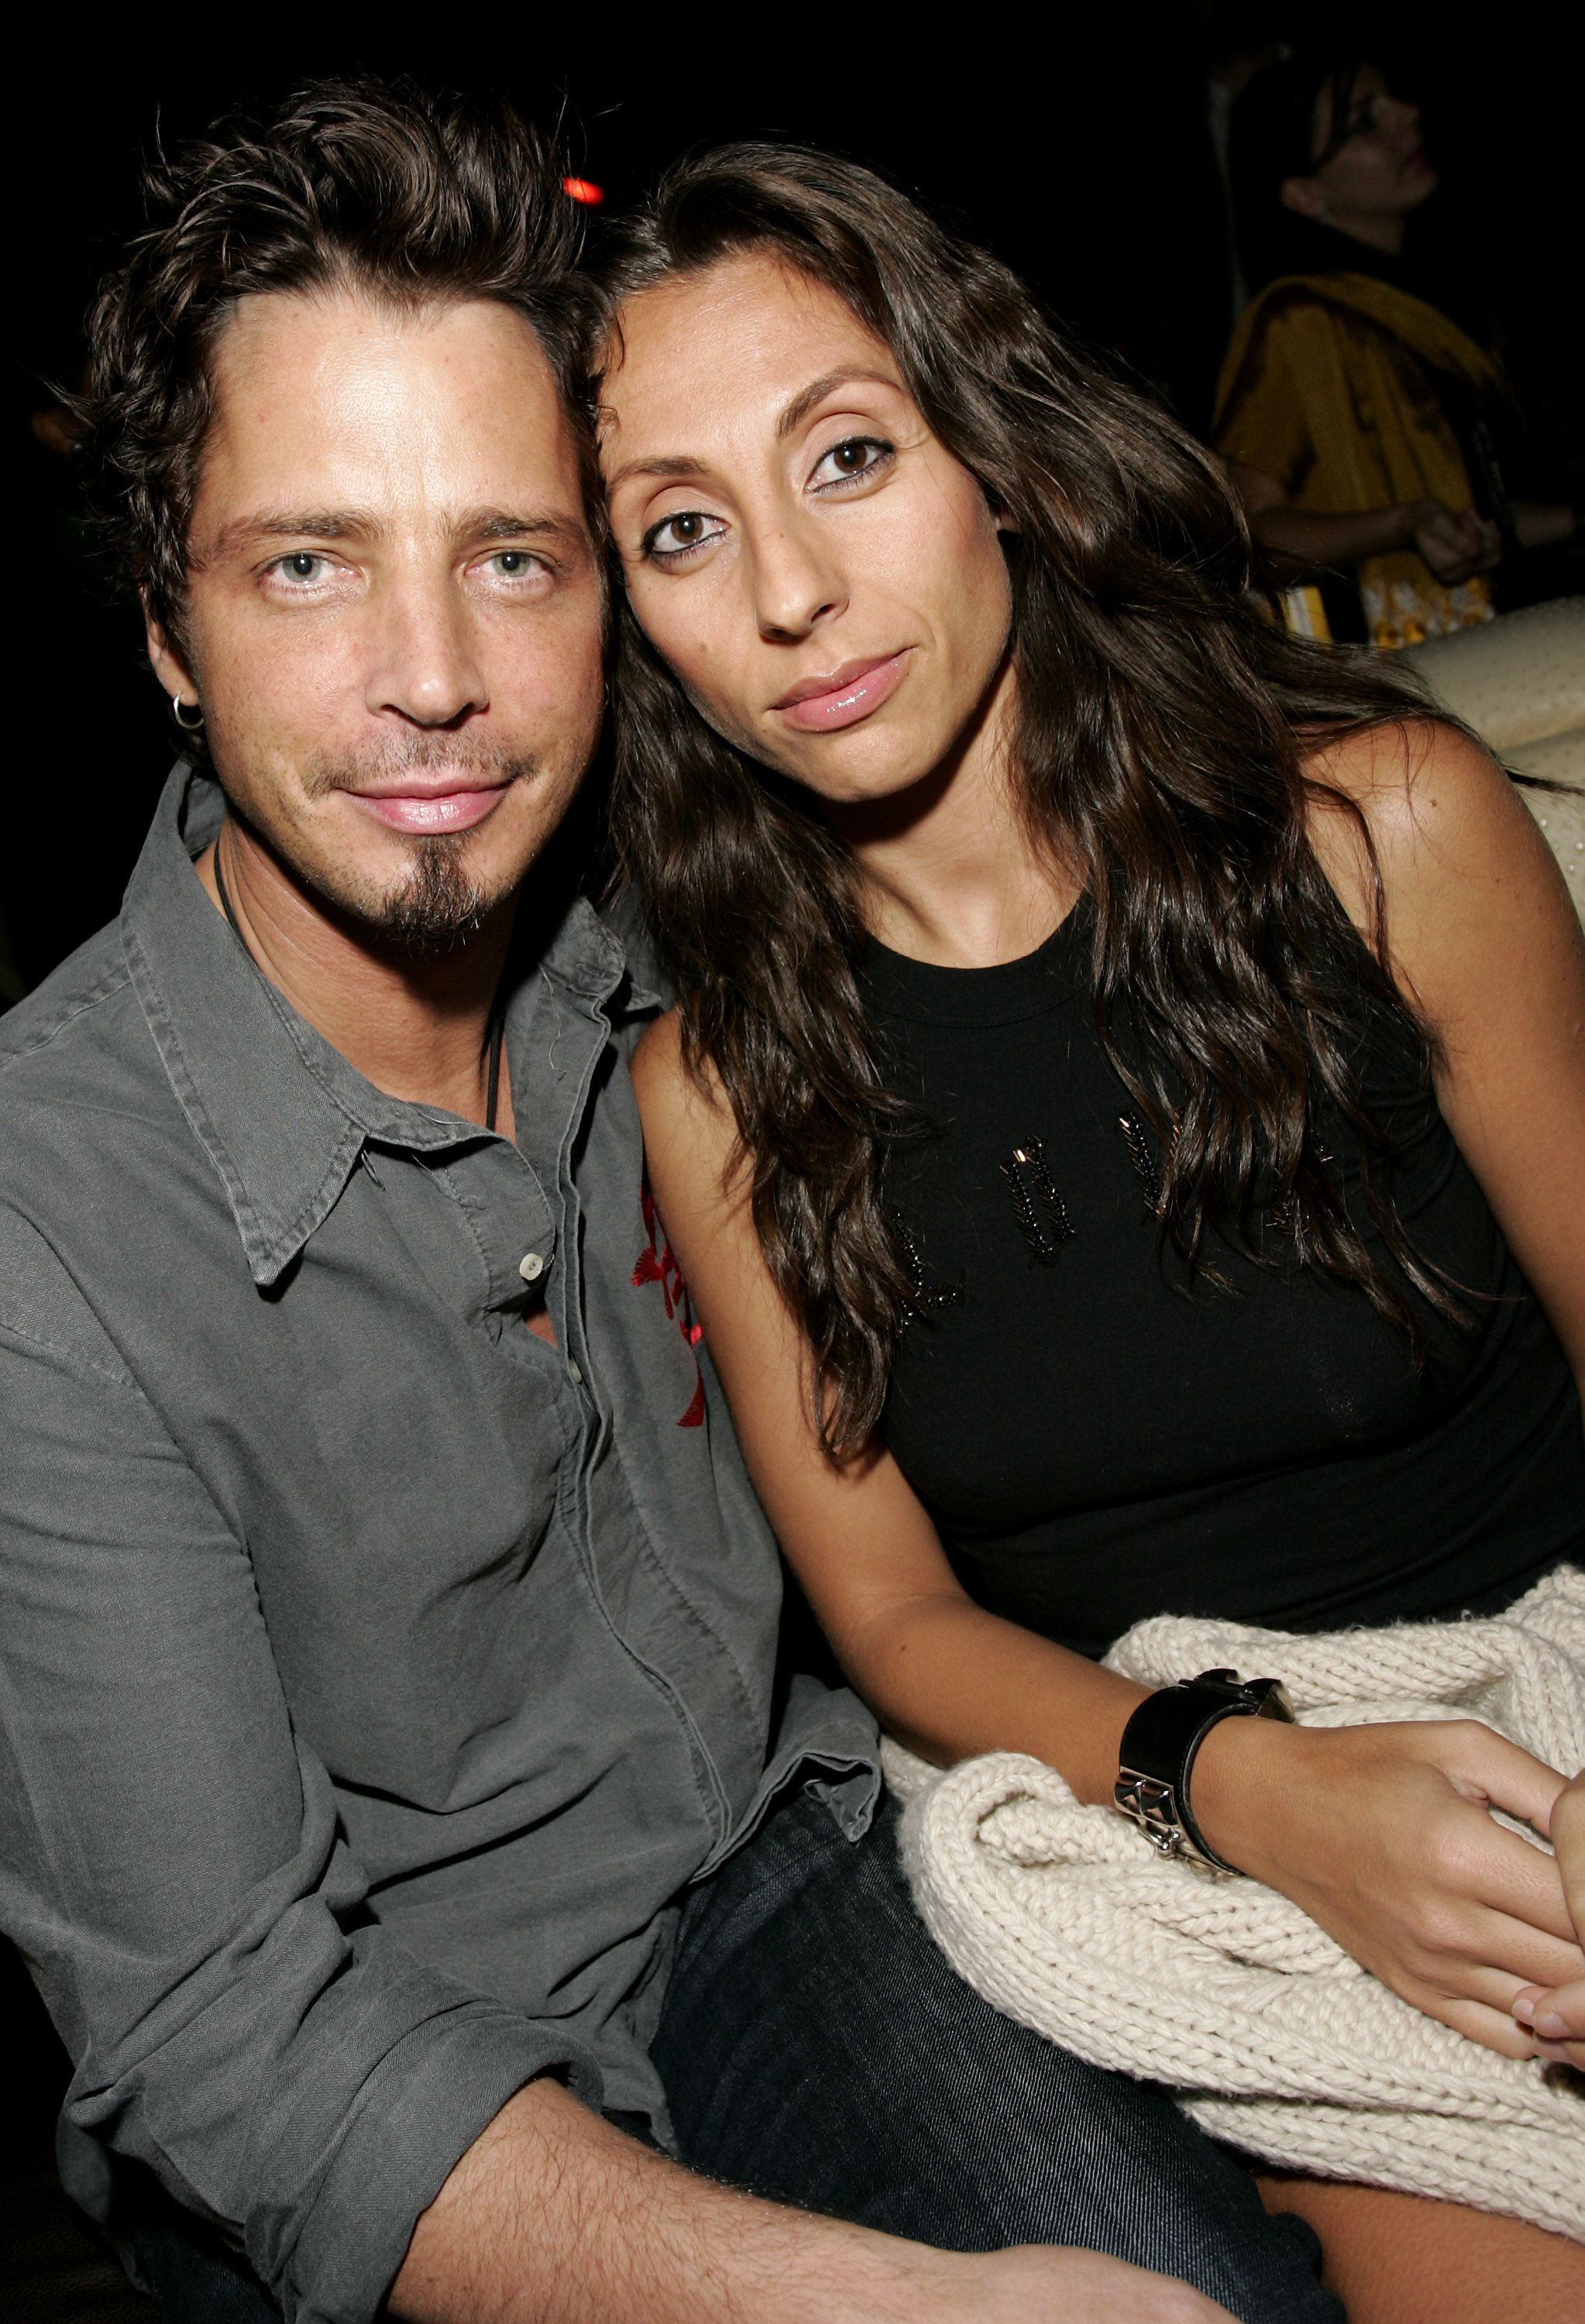 Chris Cornell and Vicky Cornell during Audioslave's Chris Cornell Hosts Party at Marquee - September 14, 2006 at Marquee in New York City, New York, United States. (Photo by Brian Ach/WireImage)